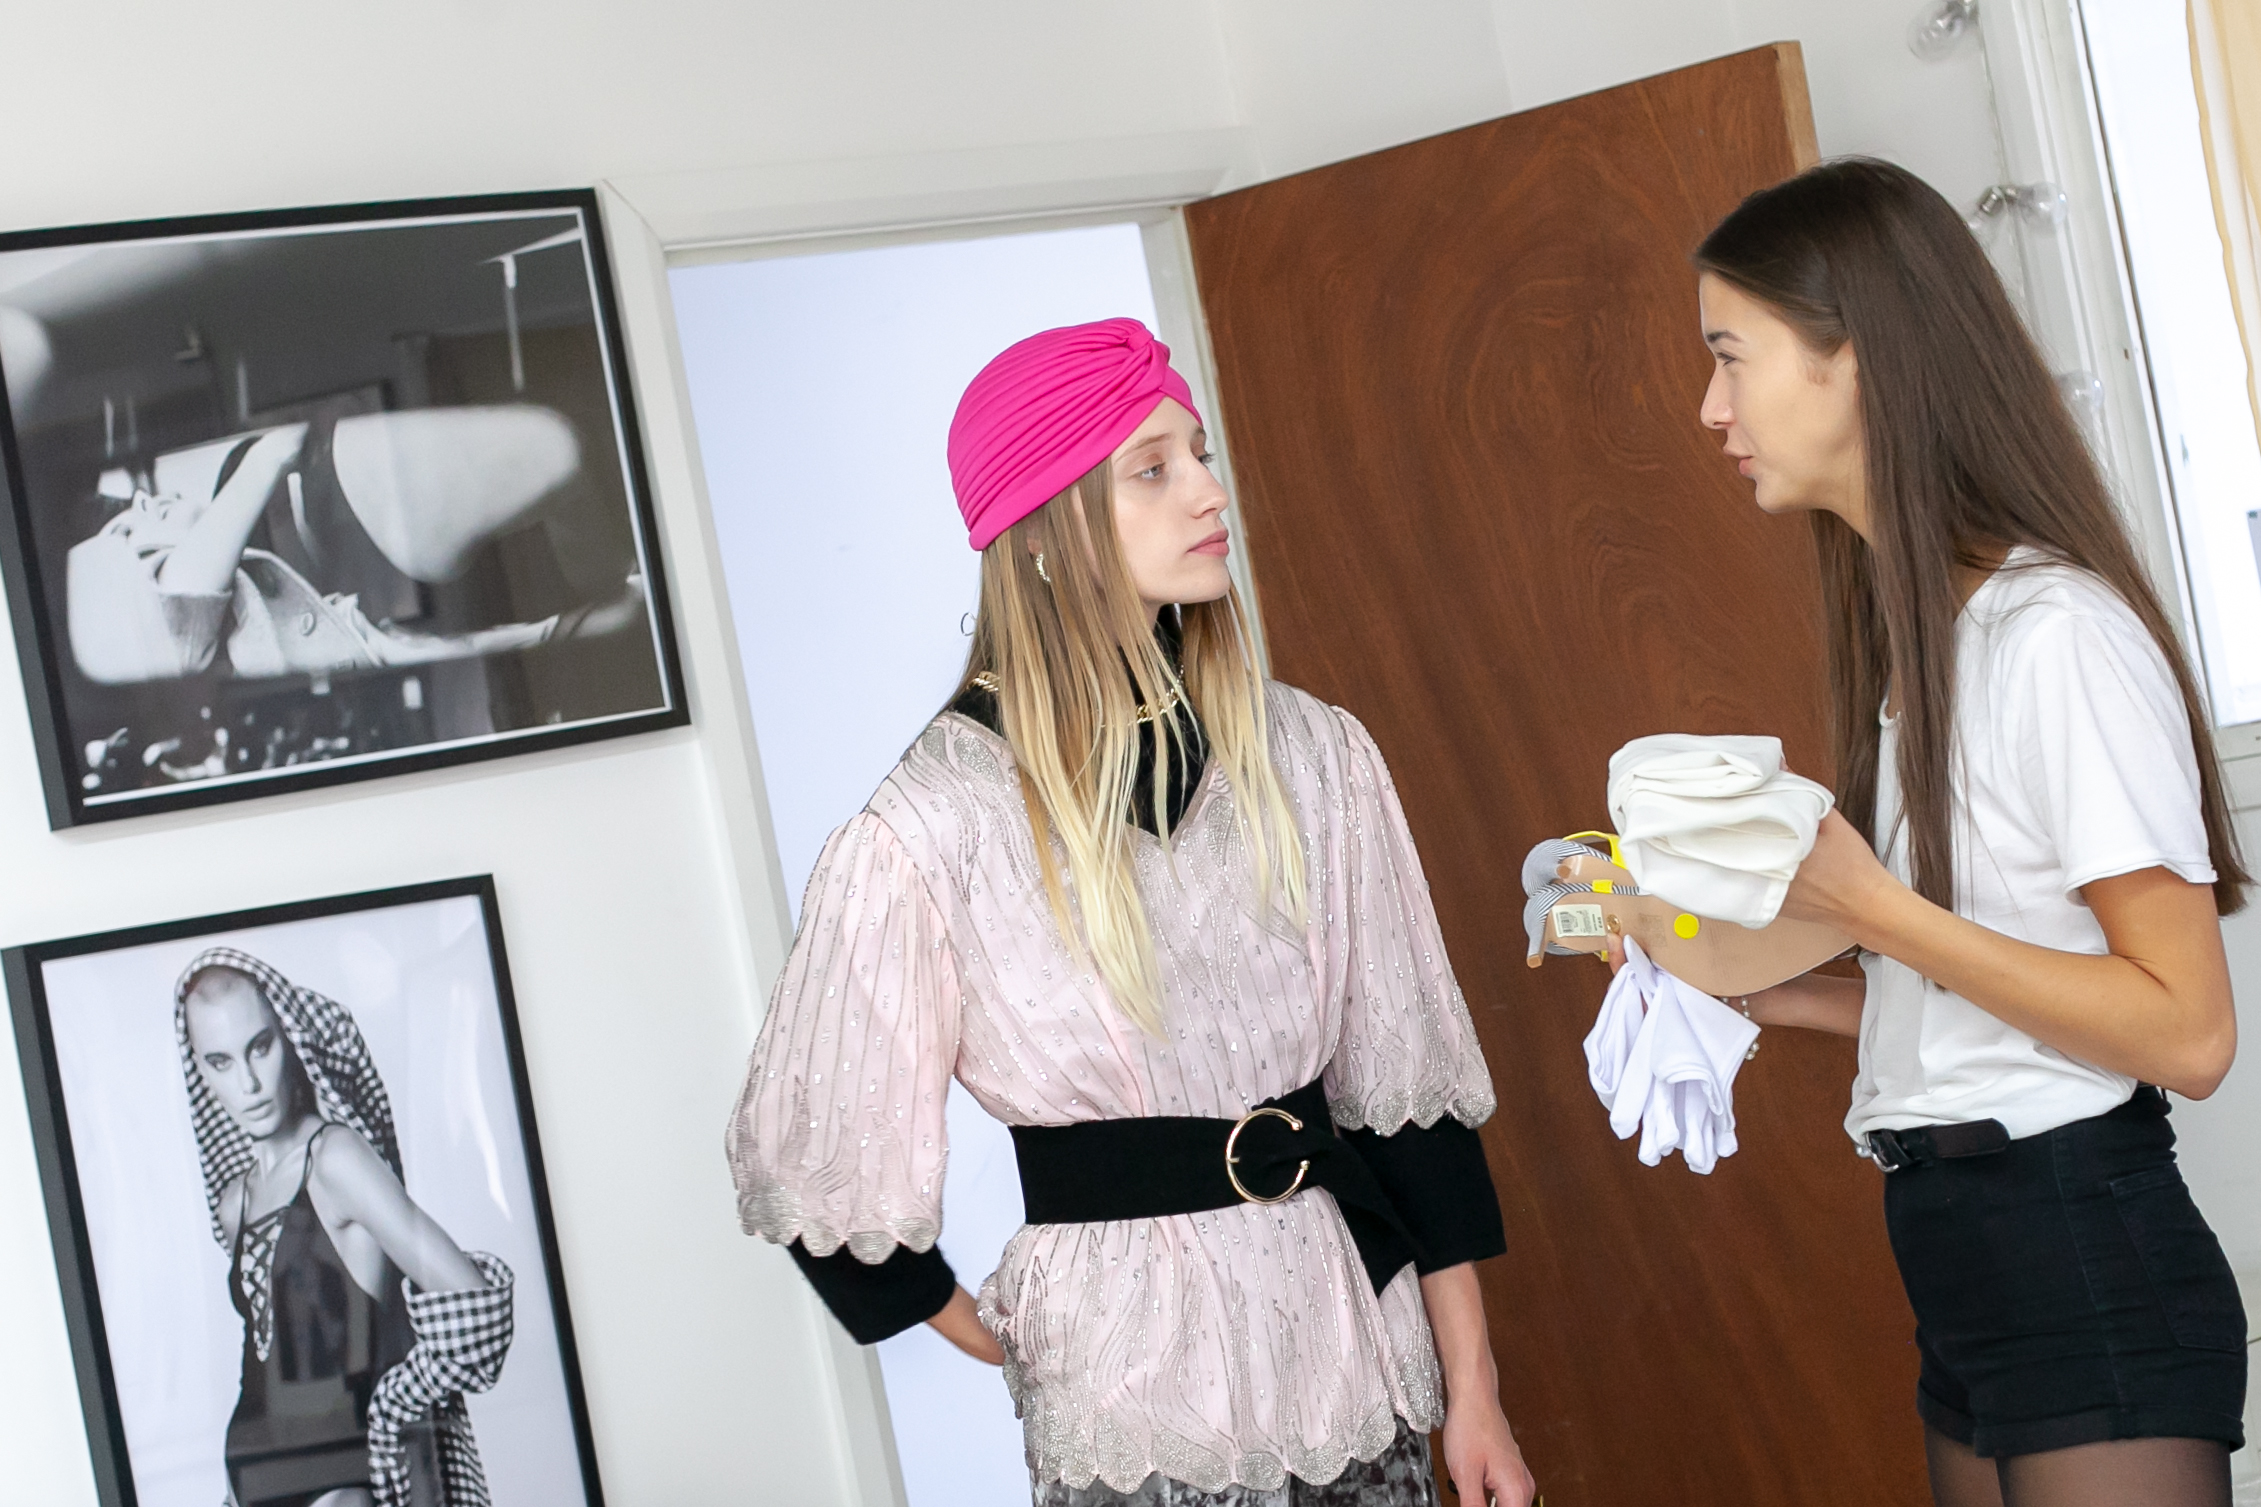 Fashion Styling and Media: Residential Summer School (14-16 Year Olds)